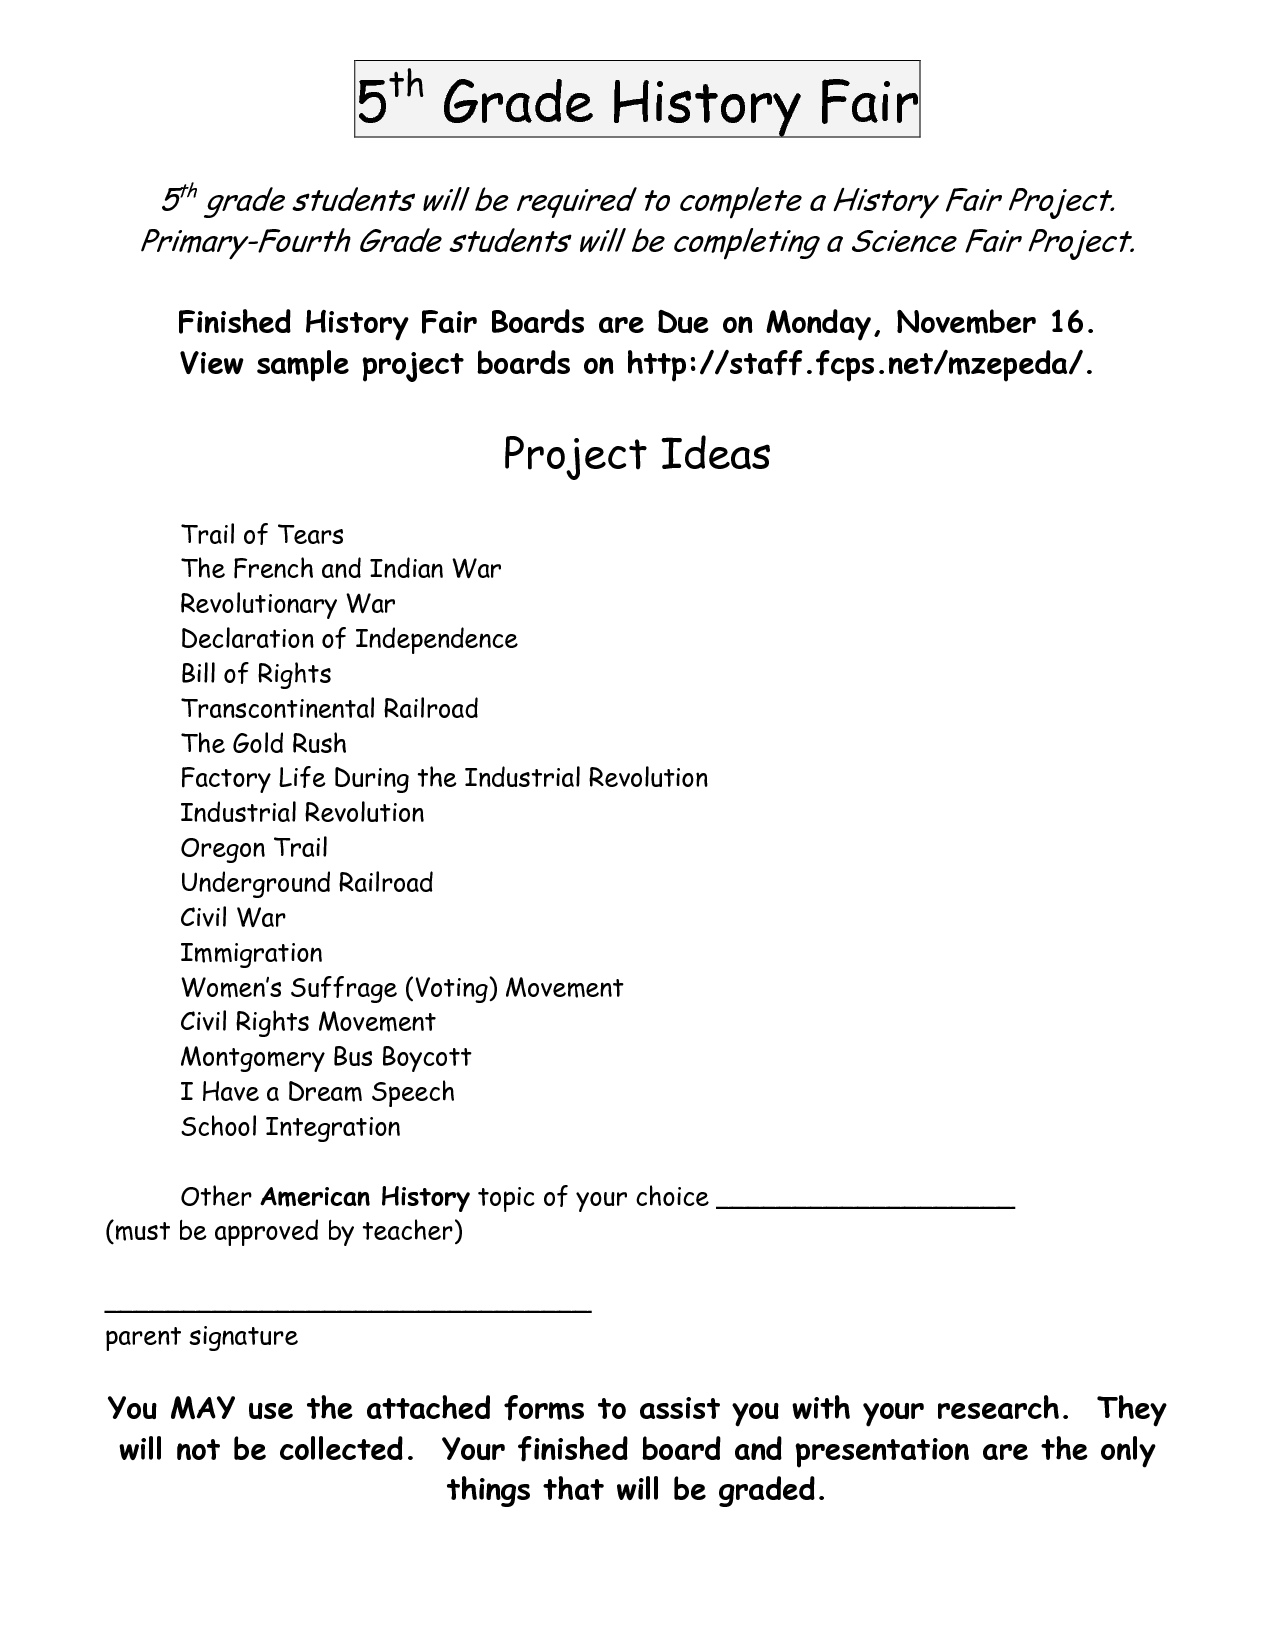 Printables 2nd Grade Social Studies Worksheets Free Printables 2nd grade social studies worksheets free printables abitlikethis printables